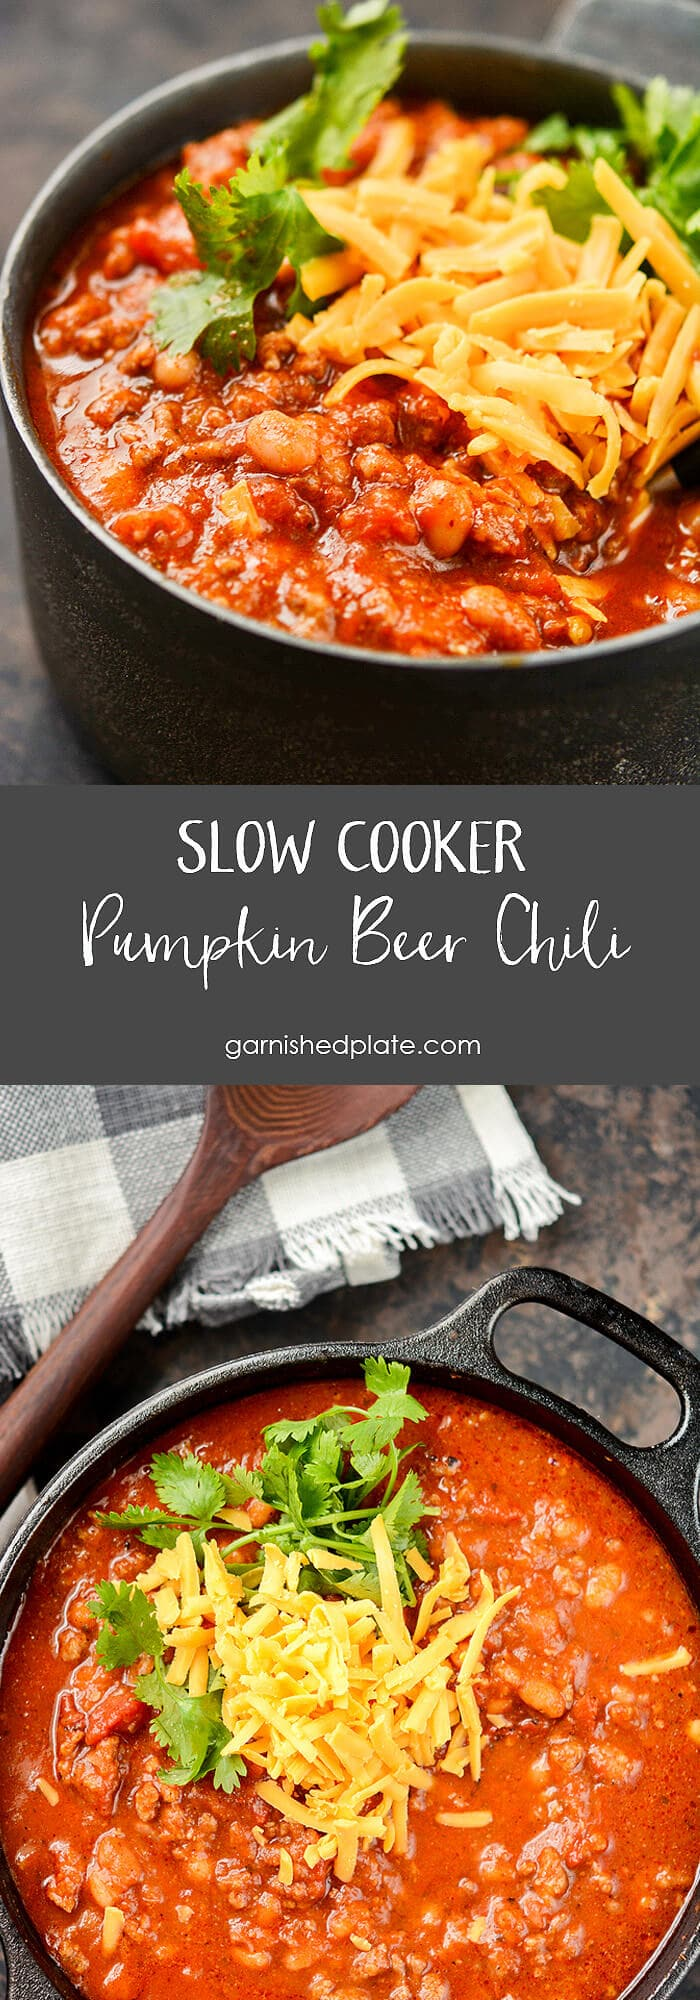 Packed full of the perfect fall flavors! Use your favorite pumpkin beer to take this chili over the top.  Loaded with butternut squash and fire-roasted tomatoes this Slow Cooker Pumpkin Beer Chili will become a new easy fall favorite.